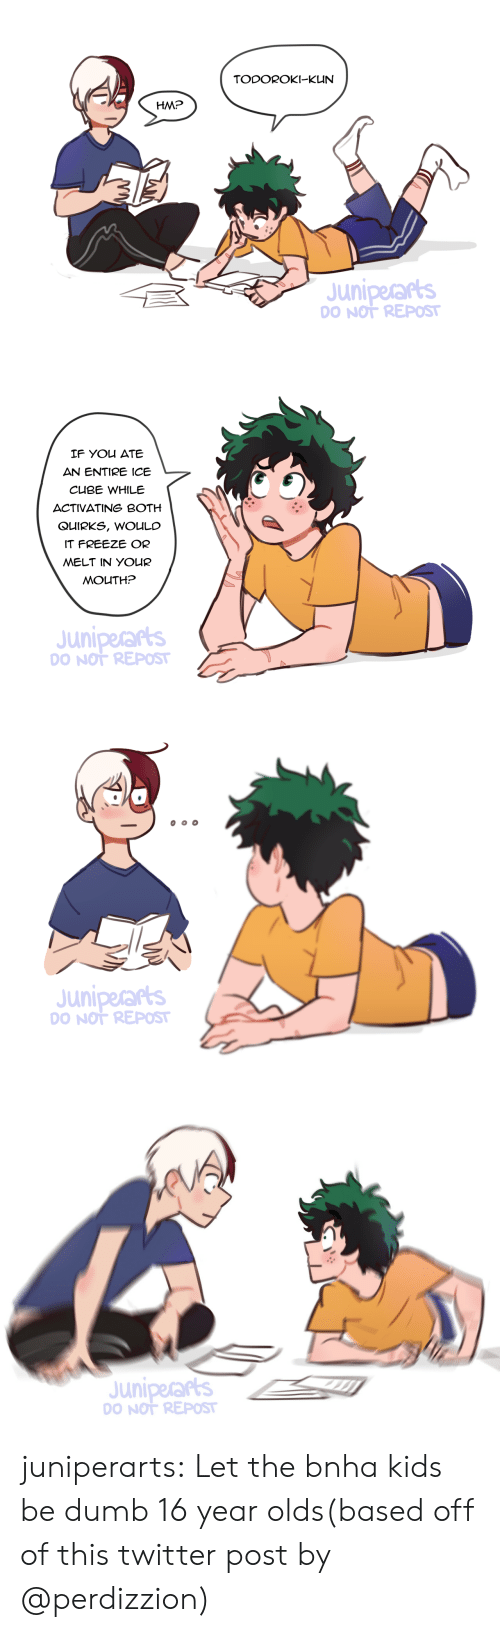 Dumb, Ice Cube, and Target: TODOROKI-KUN  HM?  Juniperars  O NOT REPOST   IF You ATE  AN ENTIRE ICE  CUBE WHILE  ACTIVATING BOTH  QUIRKS, WOULC  IT FREEZE OR  MELT IN YOUR  MOUTH?  Juniperarts  O NOT REPOST   Juniperars  O NOT REPOST   Juniperars  O NOT REPOST juniperarts:  Let the bnha kids be dumb 16 year olds(based off of this twitter post by @perdizzion)